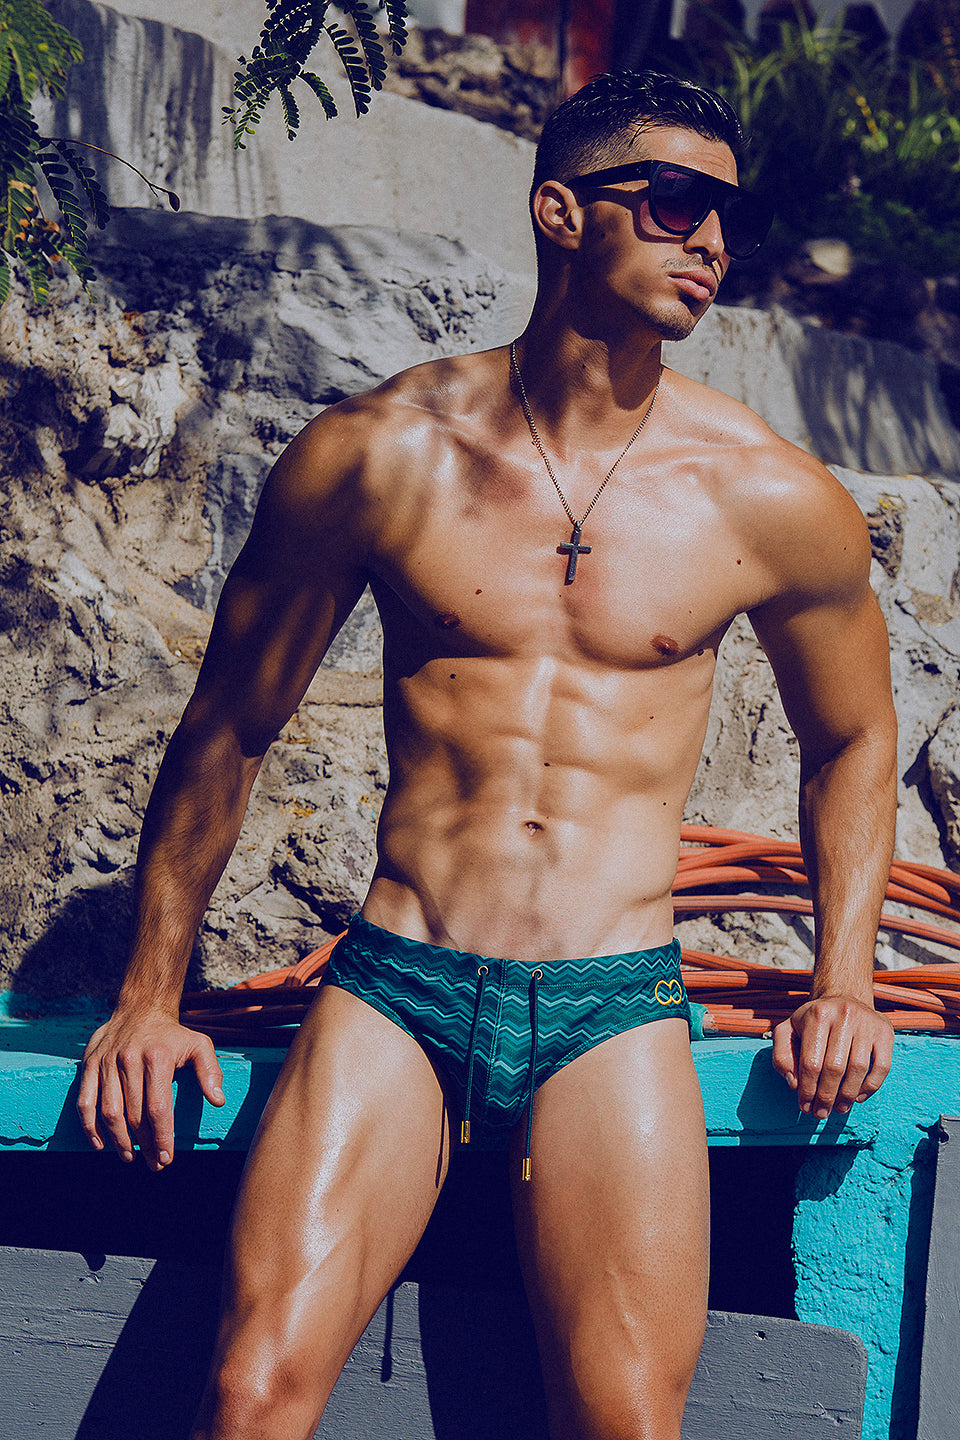 It's About The Man - Adrian C Martin - Model Mikel Roman Wearing 2Eros Swimwear